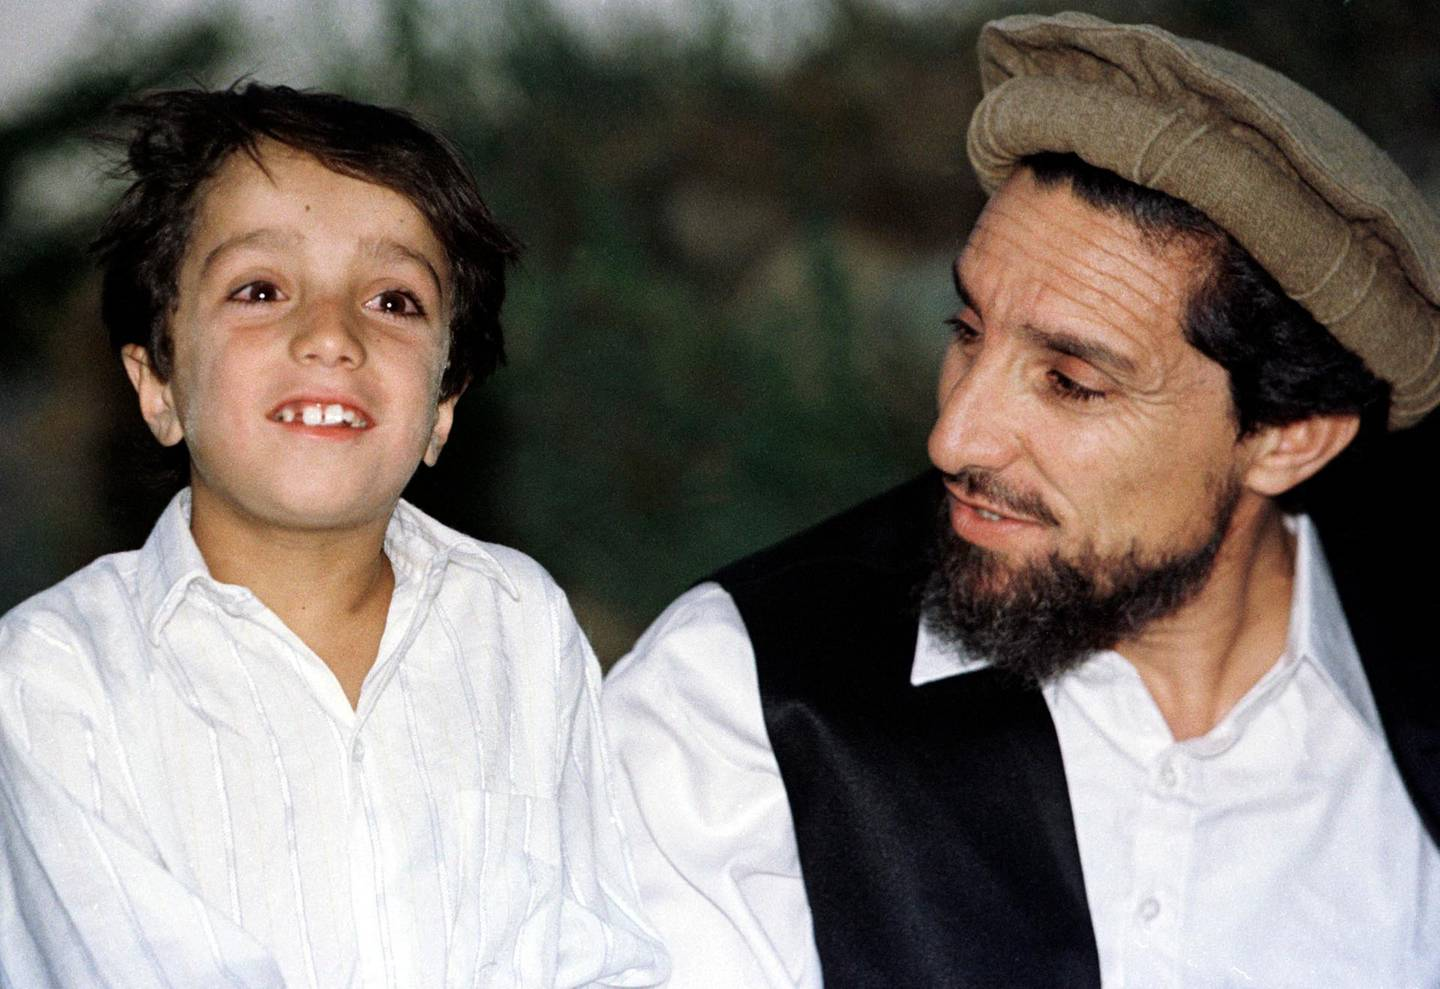 (FILES) In this file photo taken on August 21, 1997 Afghan Commander Ahmad Shah Massoud shares a private moment with his eight-year old son Ahmed, on August 21, 1997, in his house in the Panjshir Valley.  / AFP / Emmanuel DUNAND